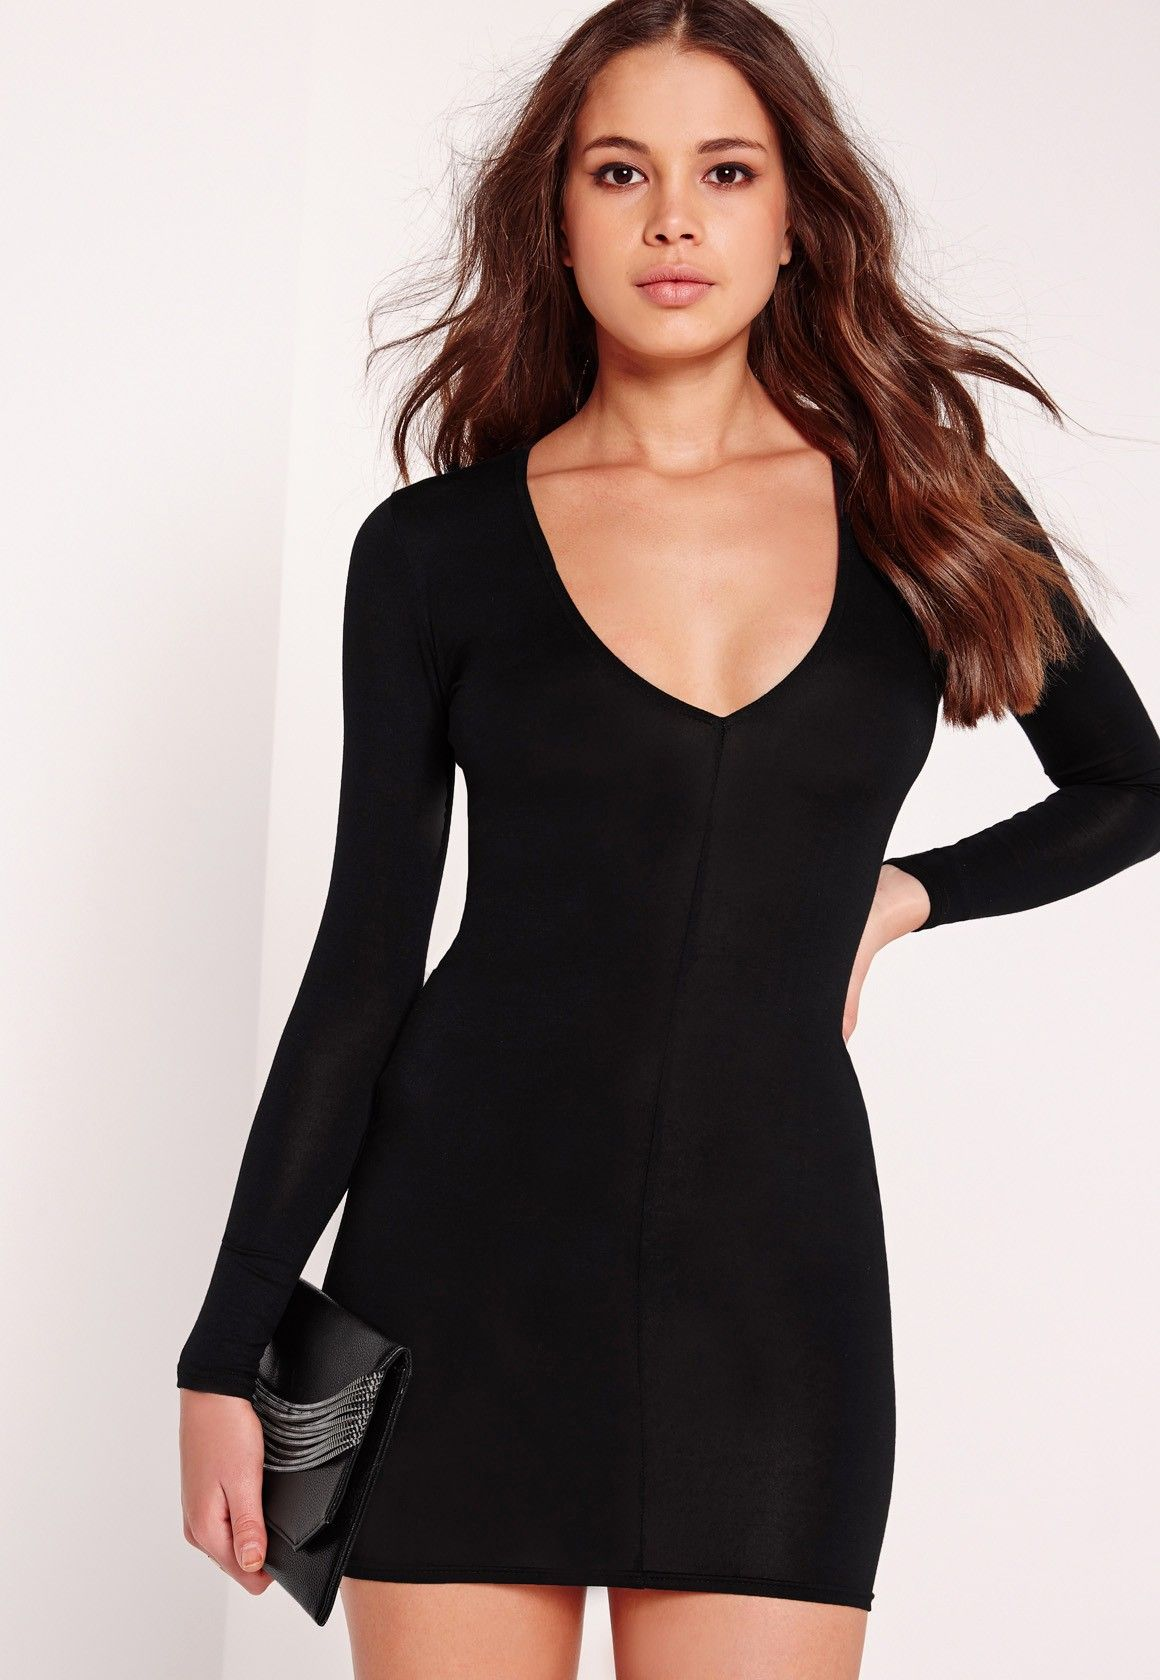 Missguided Plunge Long Sleeve Bodycon Dress Black Black Bodycon Dress Long Sleeve Long Sleeve Plunge Dress Long Sleeve Cocktail Dress [ 1680 x 1160 Pixel ]